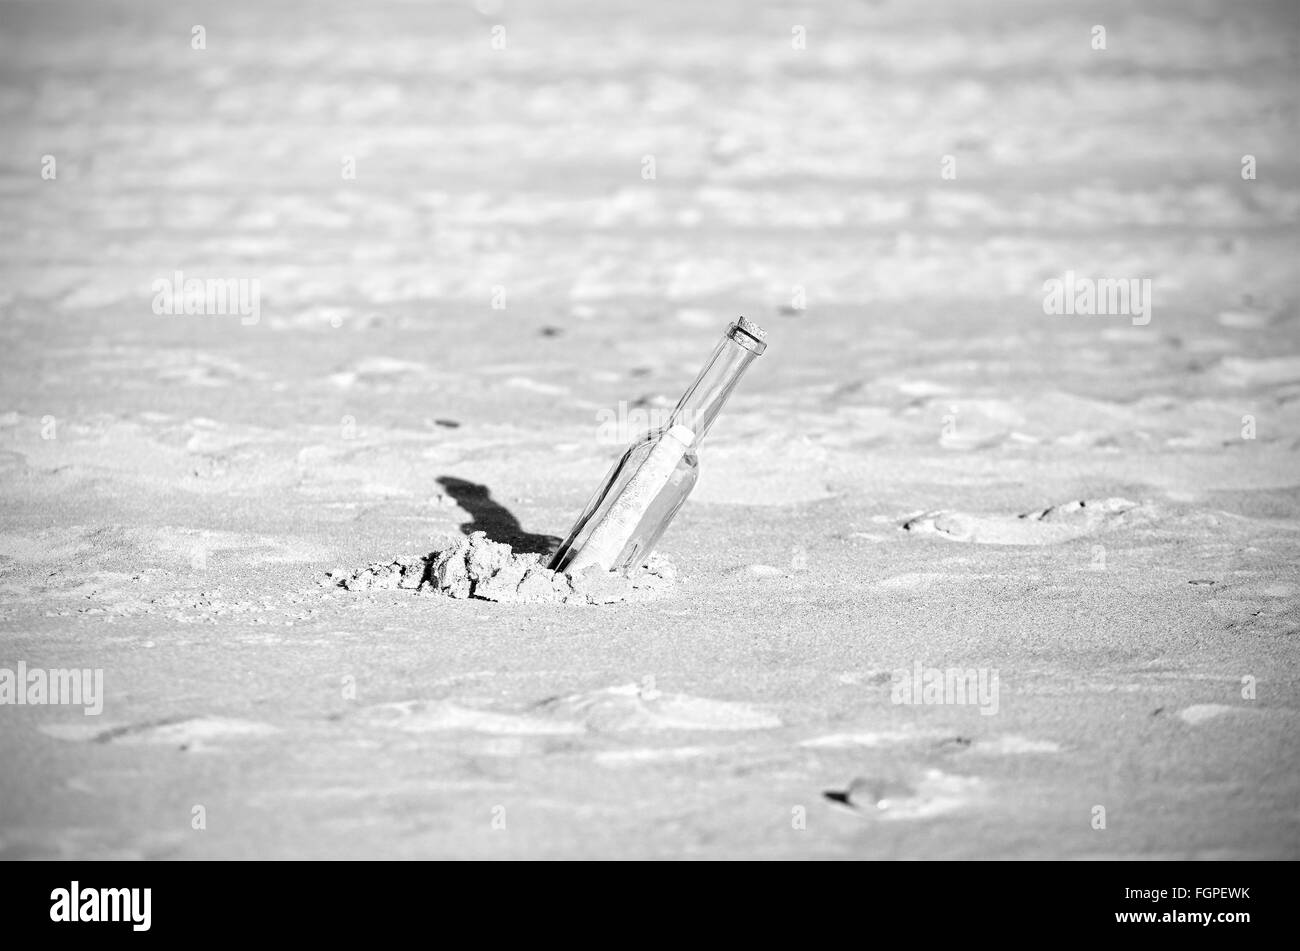 Black and white message in a bottle on sand, shallow depth of field. - Stock Image